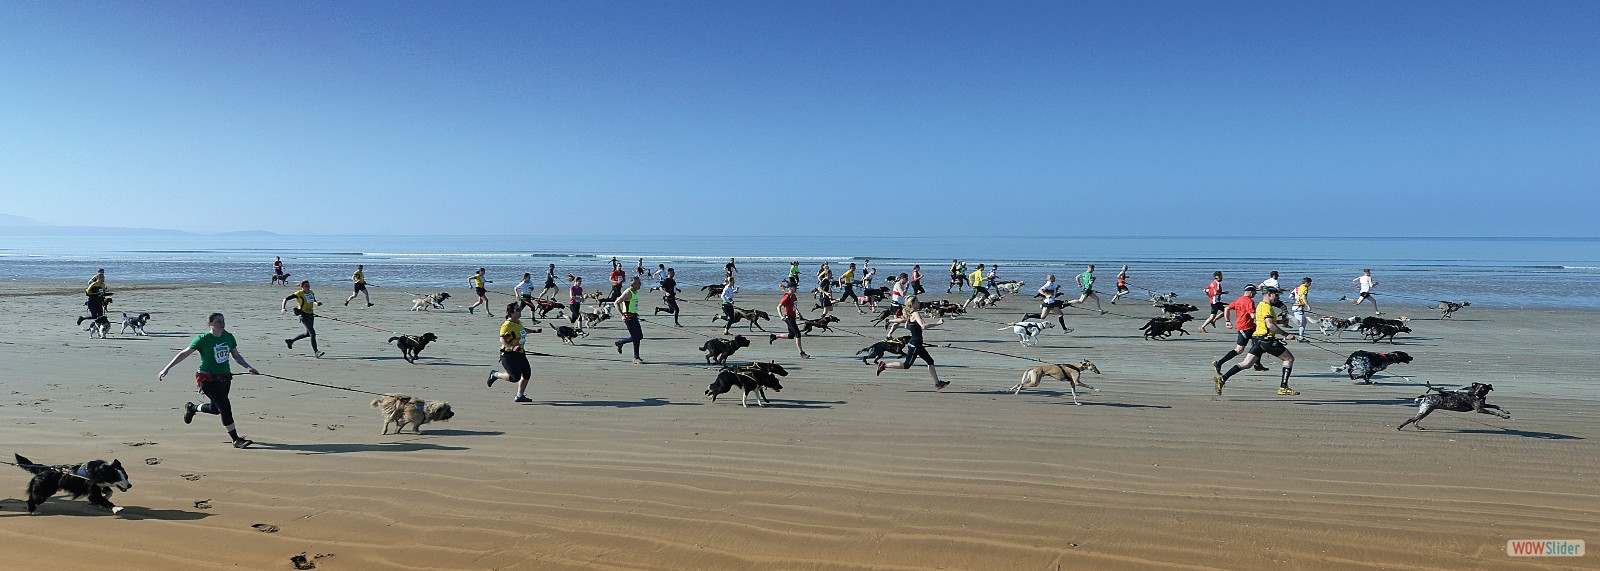 ...running with dogs